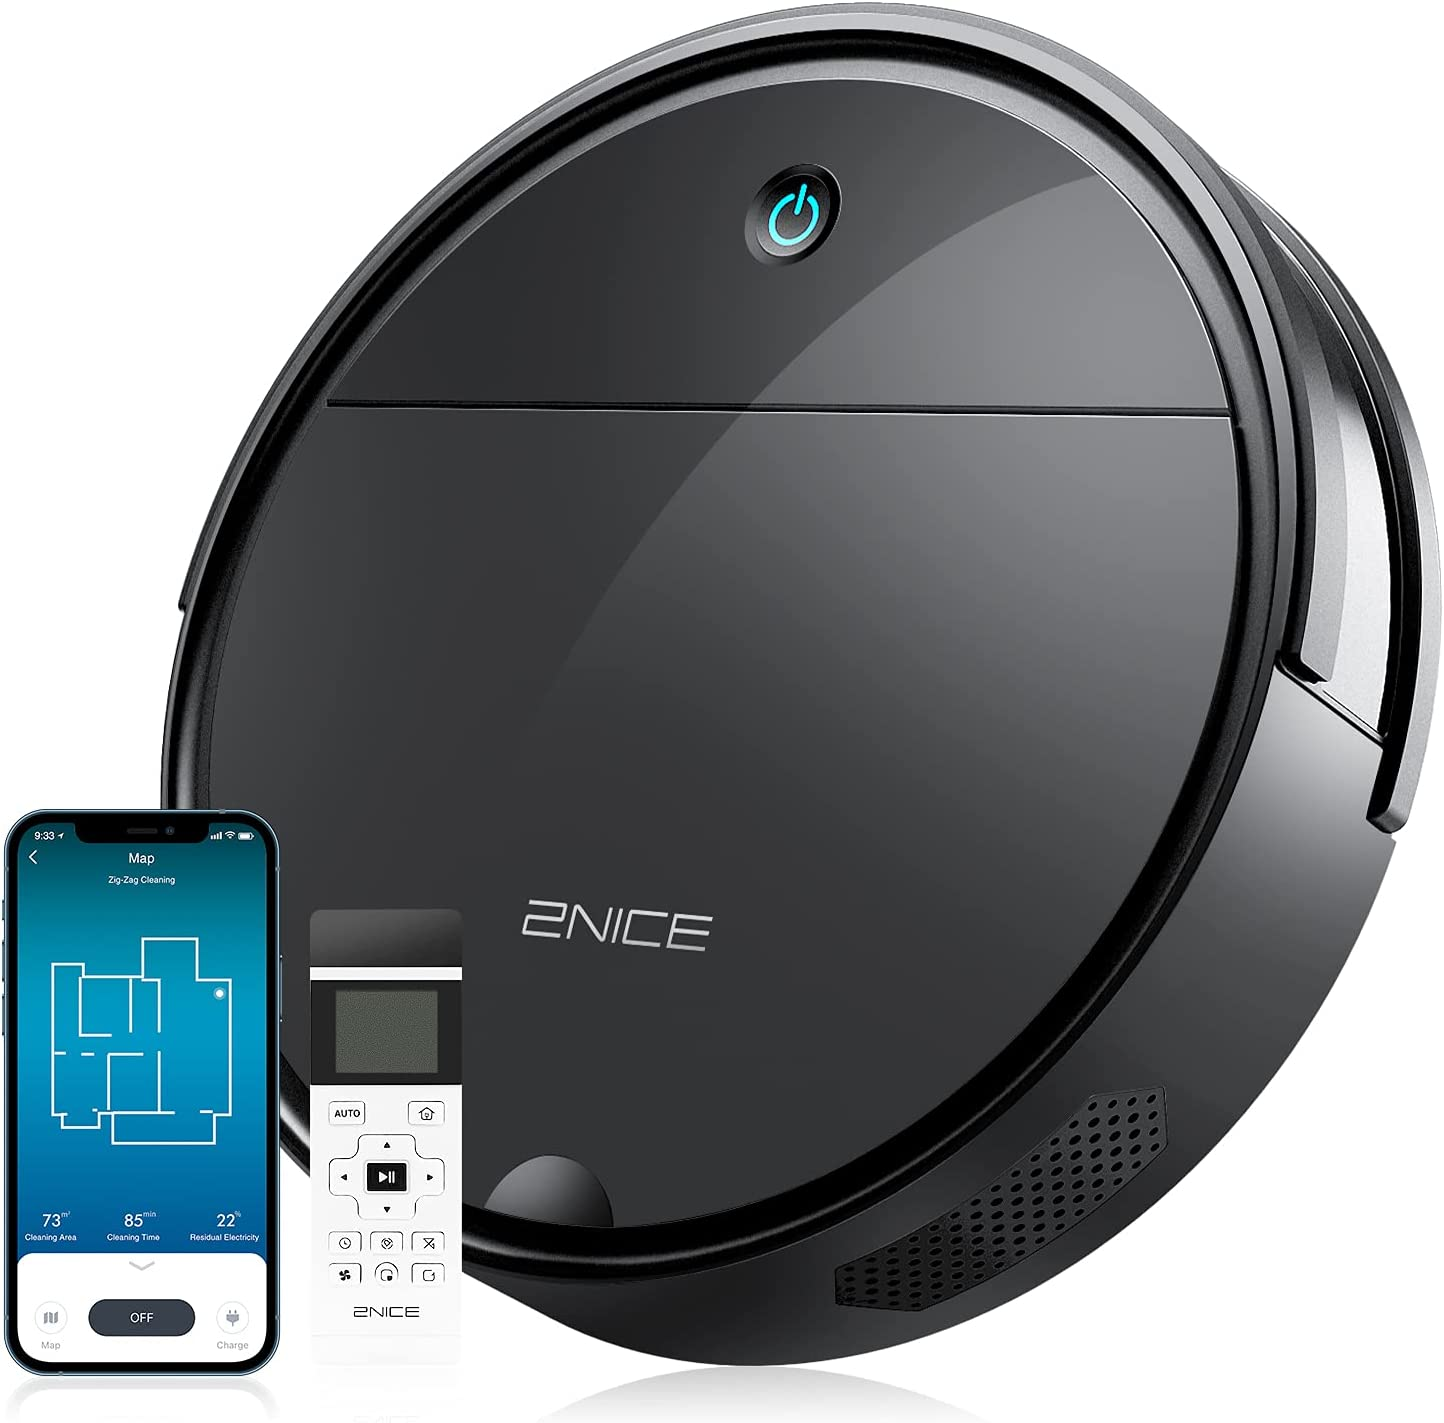 2NICE Robot Vacuum Credence Excellent Cleaner Good for Hair Pet WiFi Remote Alexa